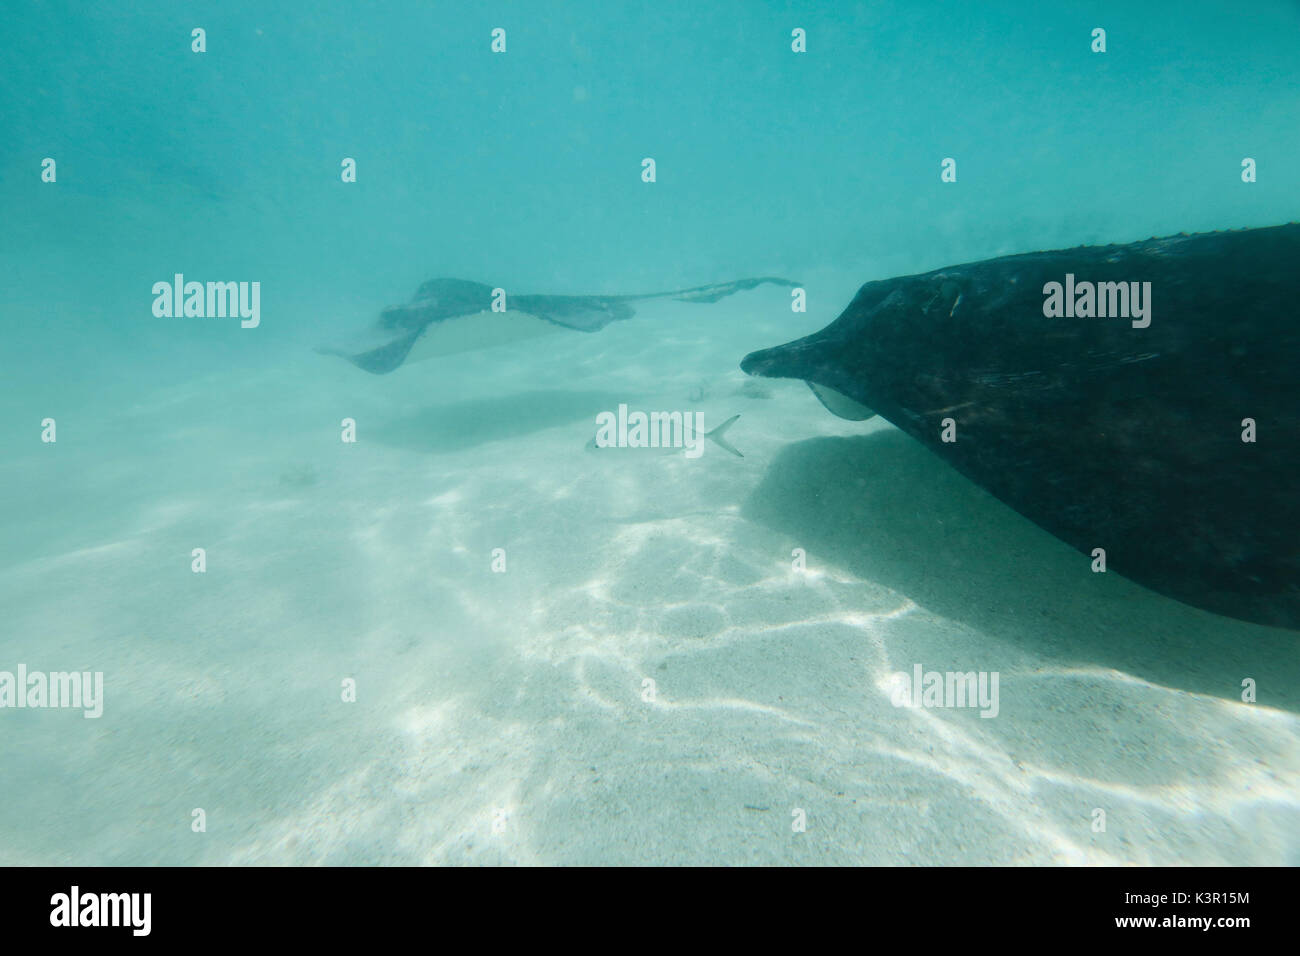 The underwater tropical world Stingray City Saint Philip Caribbean Antigua and Barbuda Leeward West Indies - Stock Image